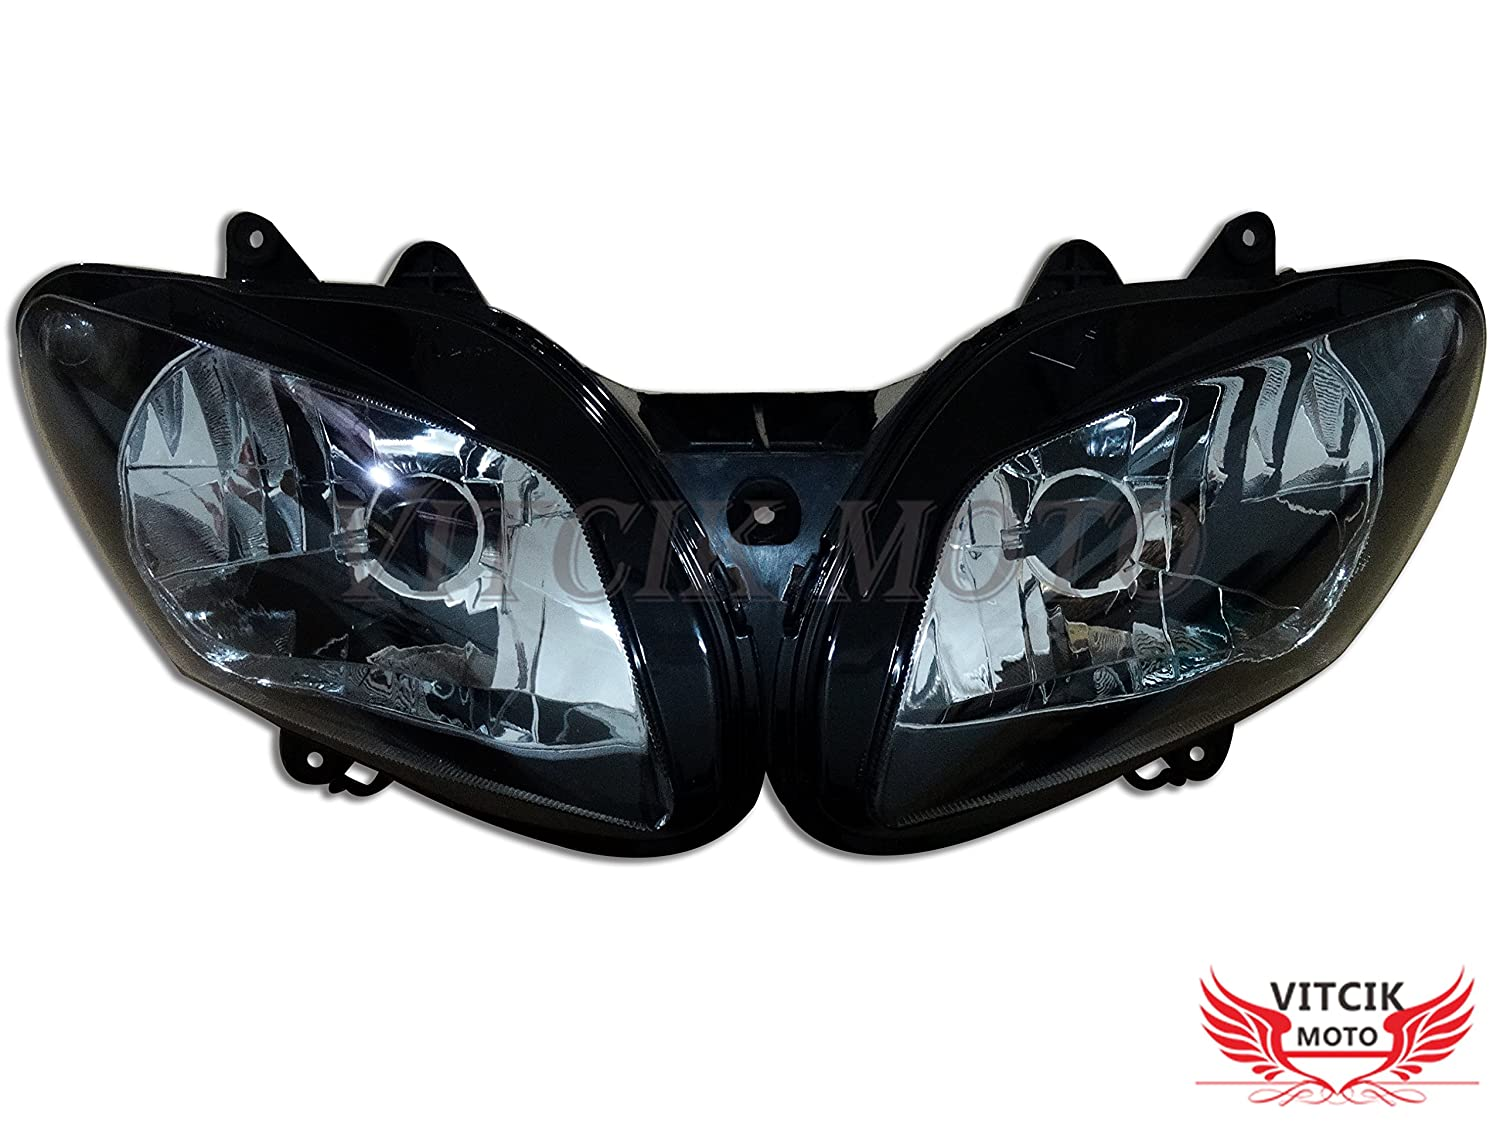 VITCIK Motorcycle Headlight Assembly for Yamaha YZF1000 R1 2002 2003 YZF 1000 R1 02 03 Head Light Lamp Assembly Kit Black